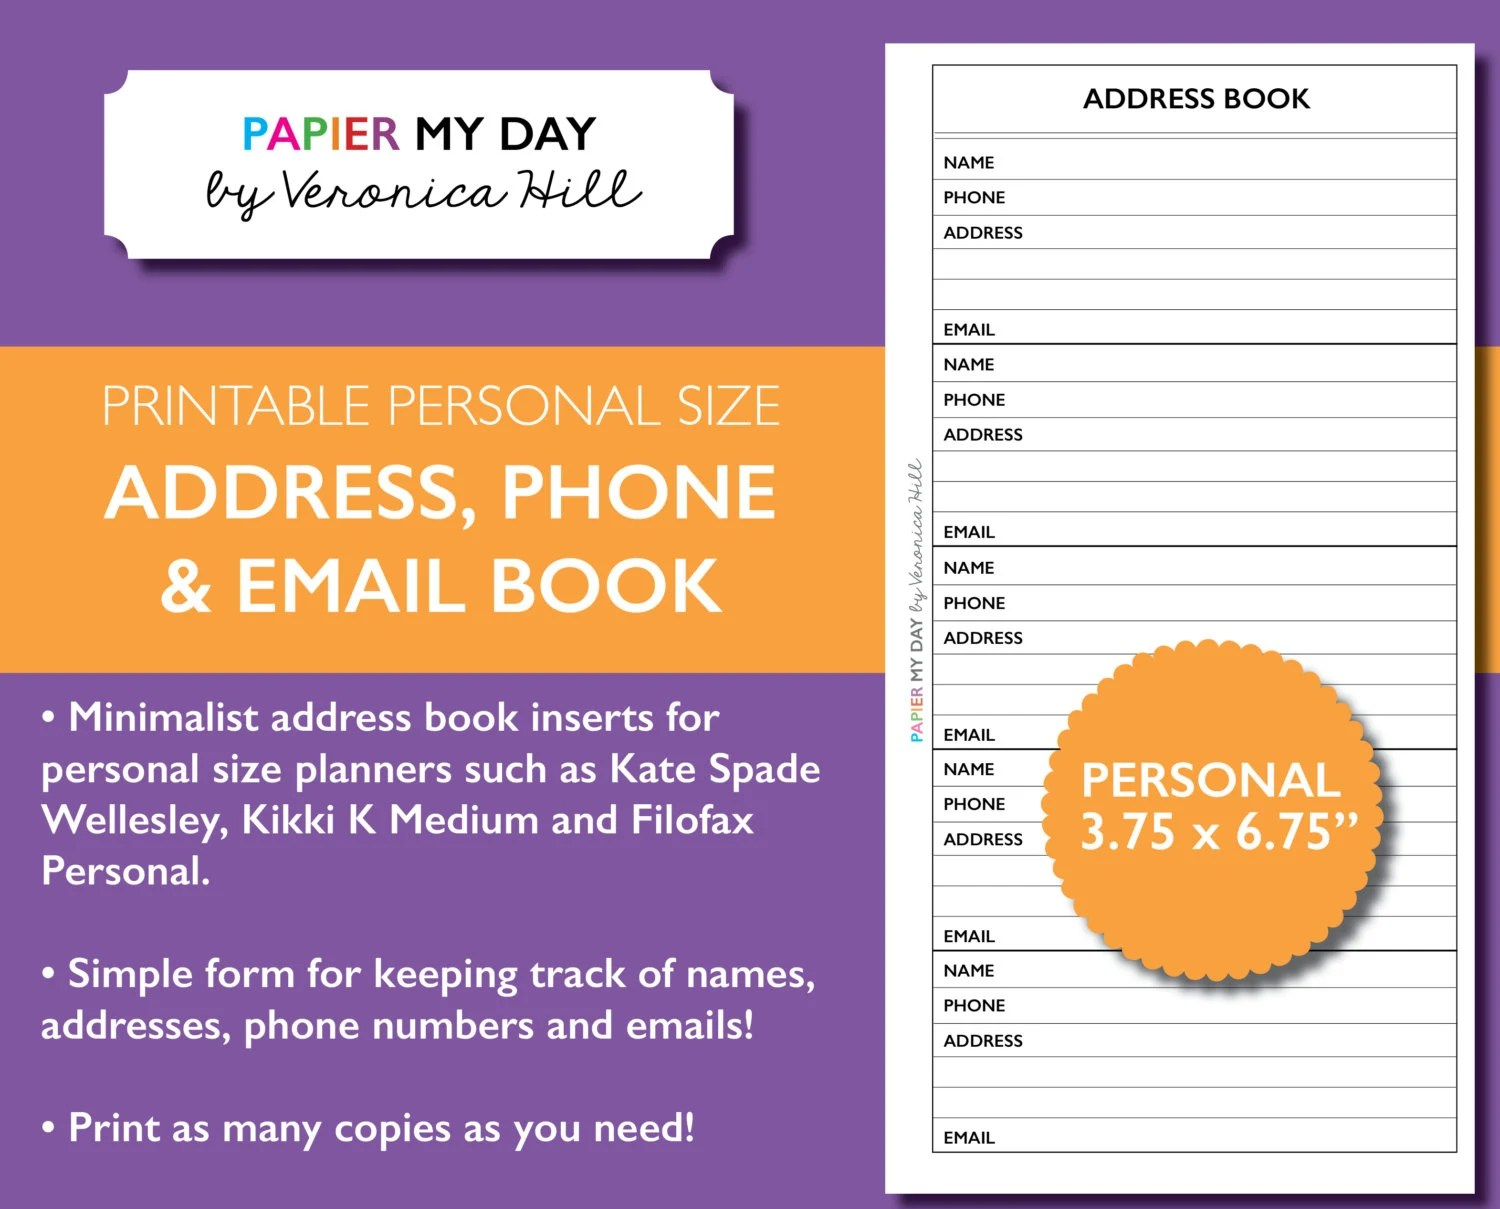 Personal Filofax Address Book Printable Address Book for Etsy